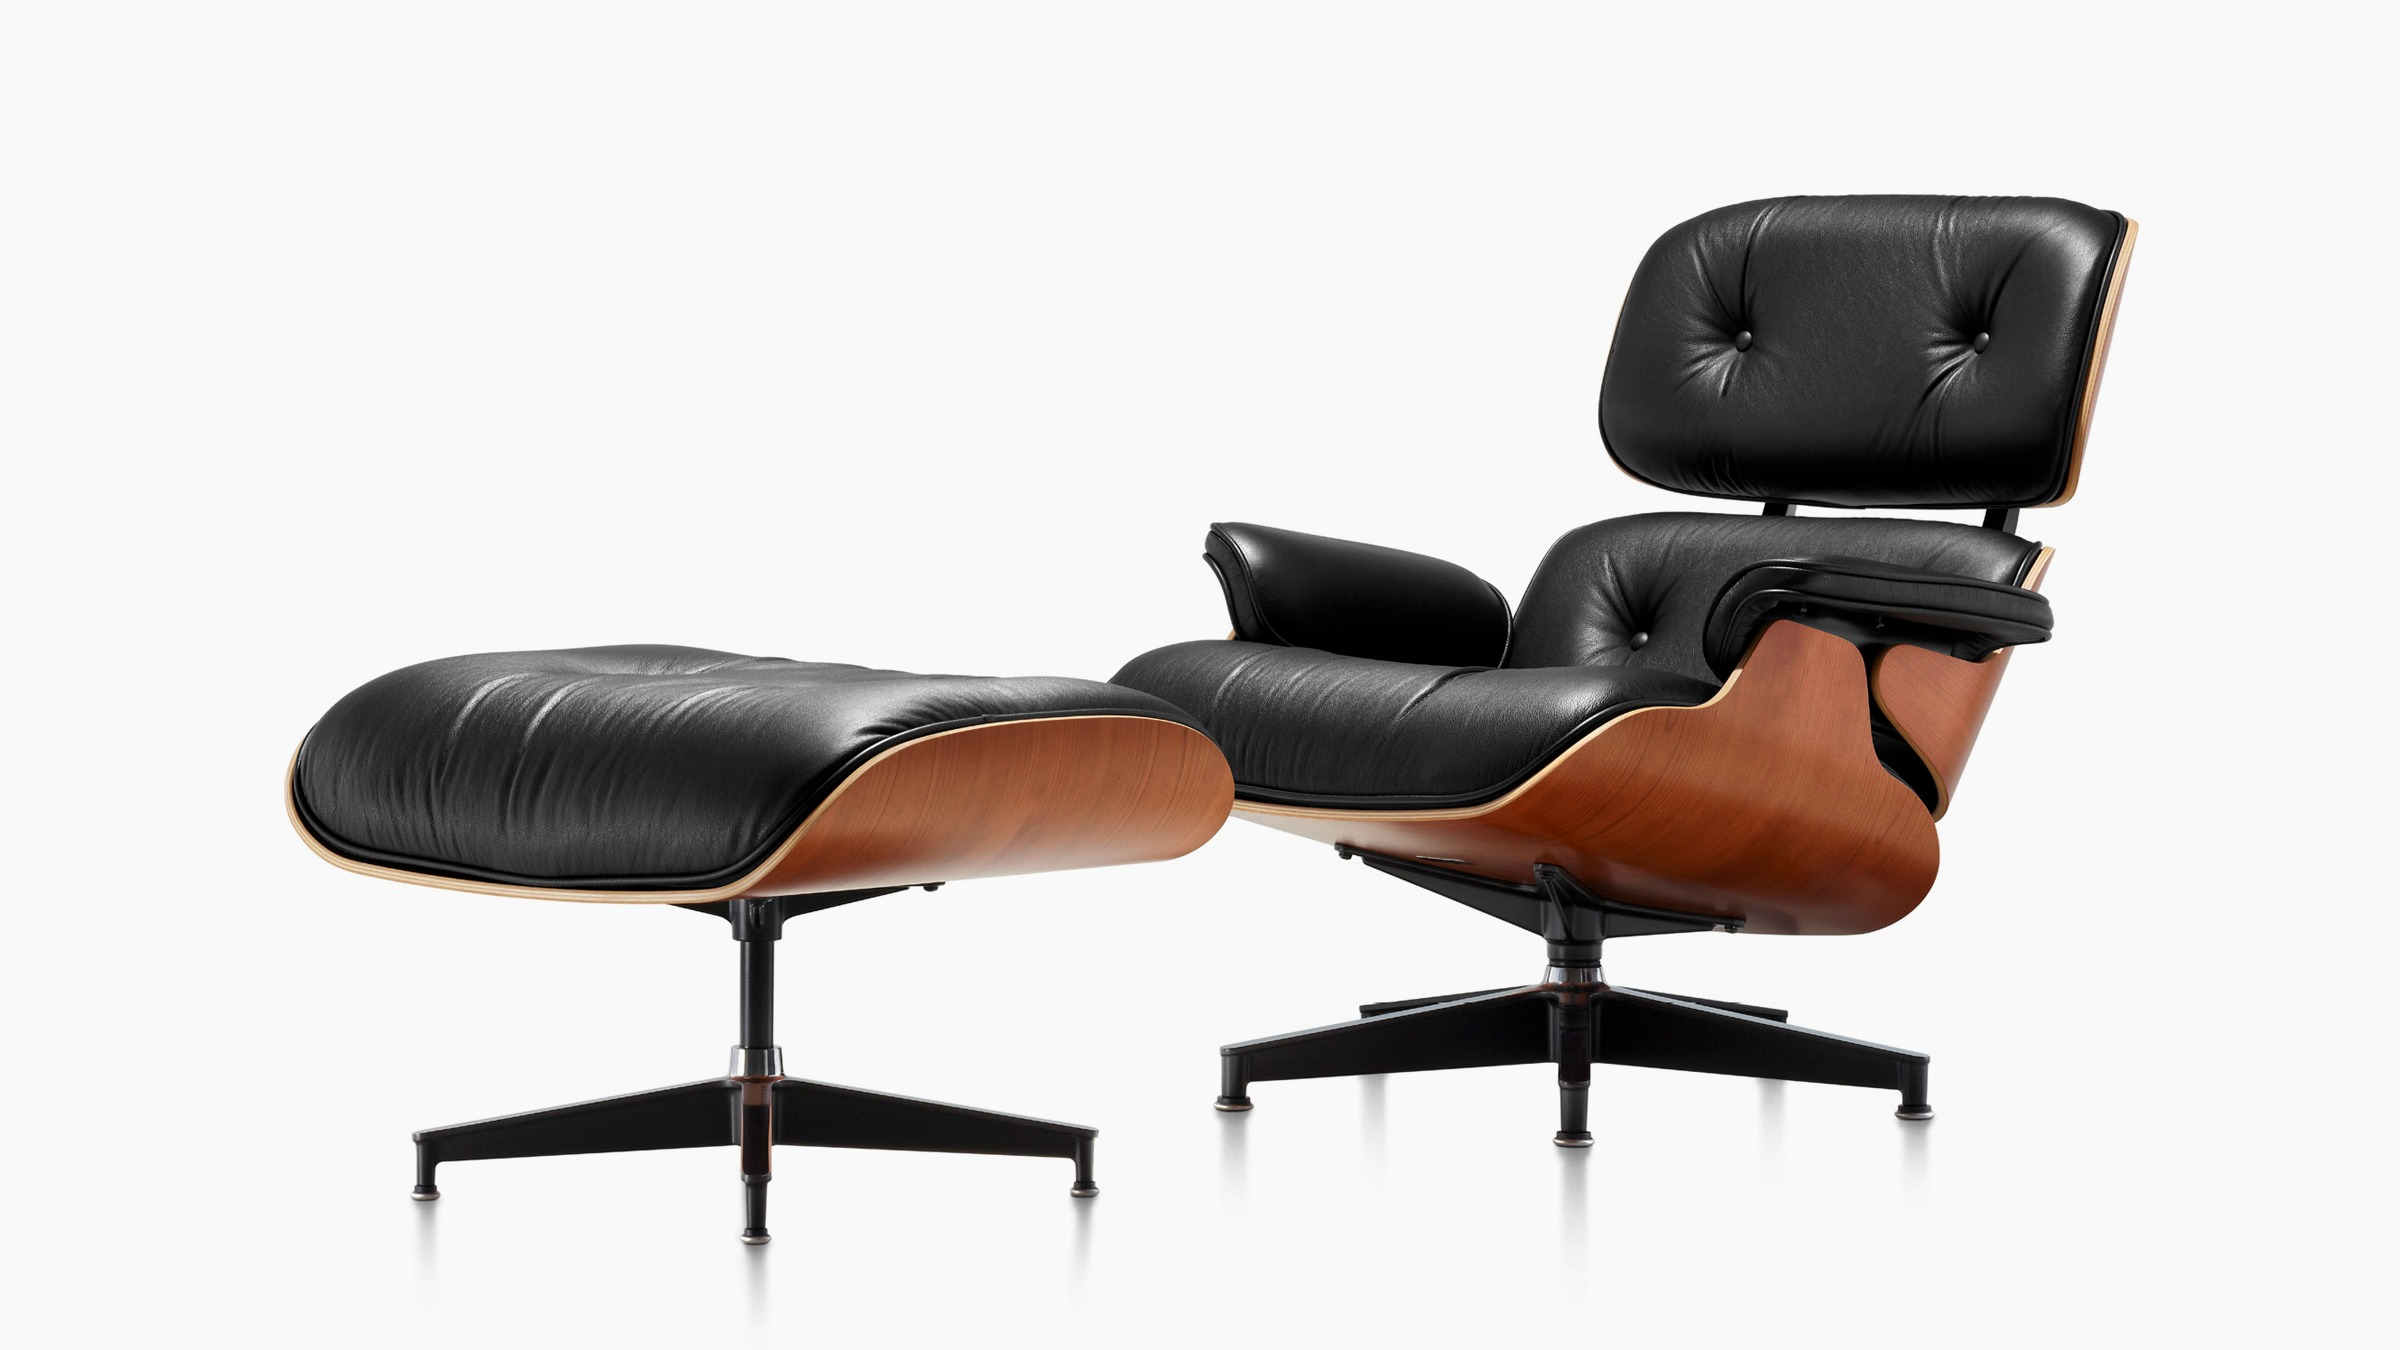 Cheap Eames, Aeron, And Barcelona Chairs: Inside The Black Market For Fake  Designer Furniture U2014 Quartzy